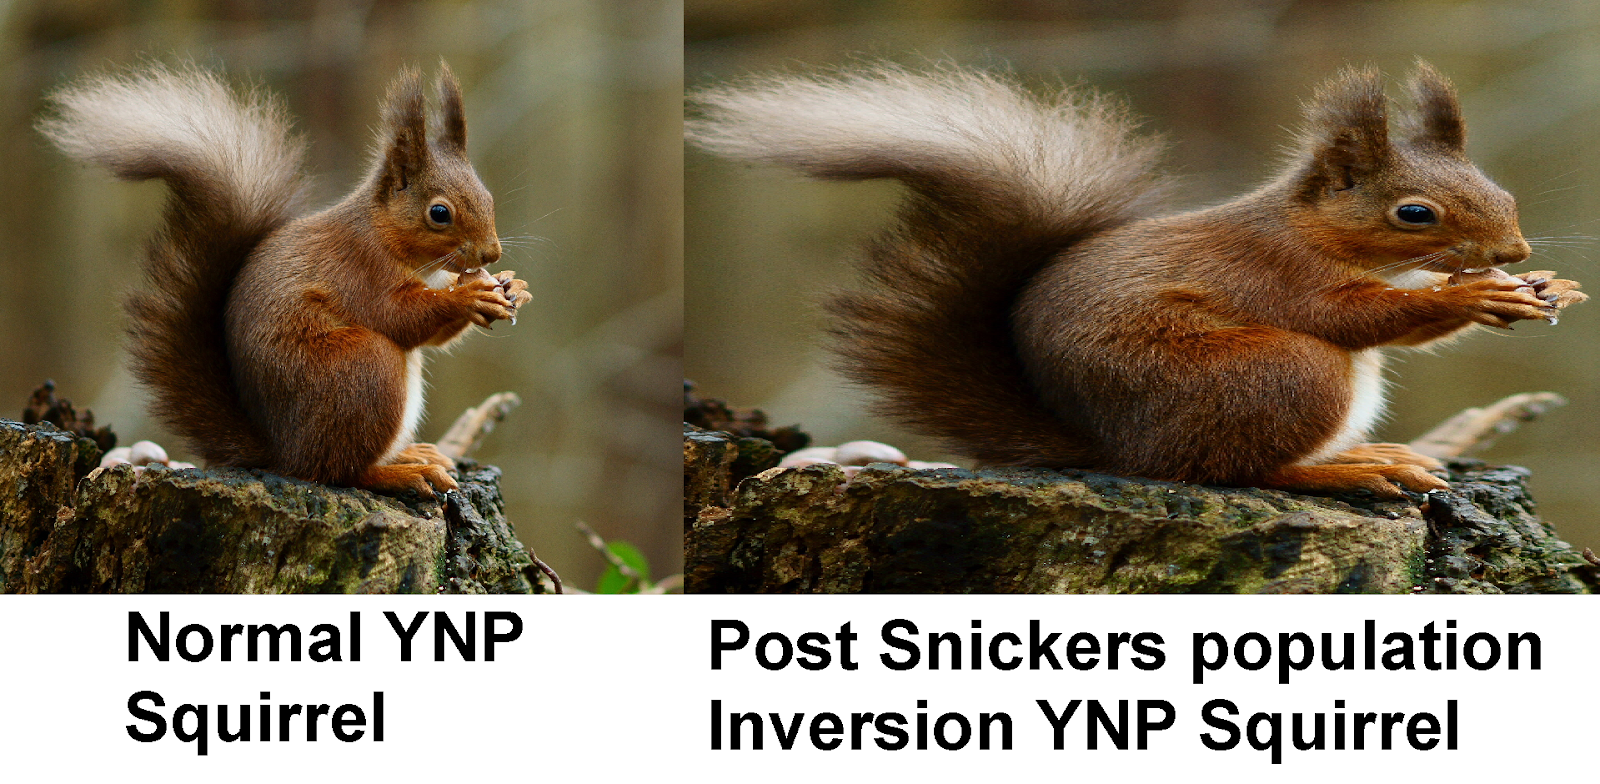 Figure 2: Yellowstone National Park Diabetic squirrel comparison